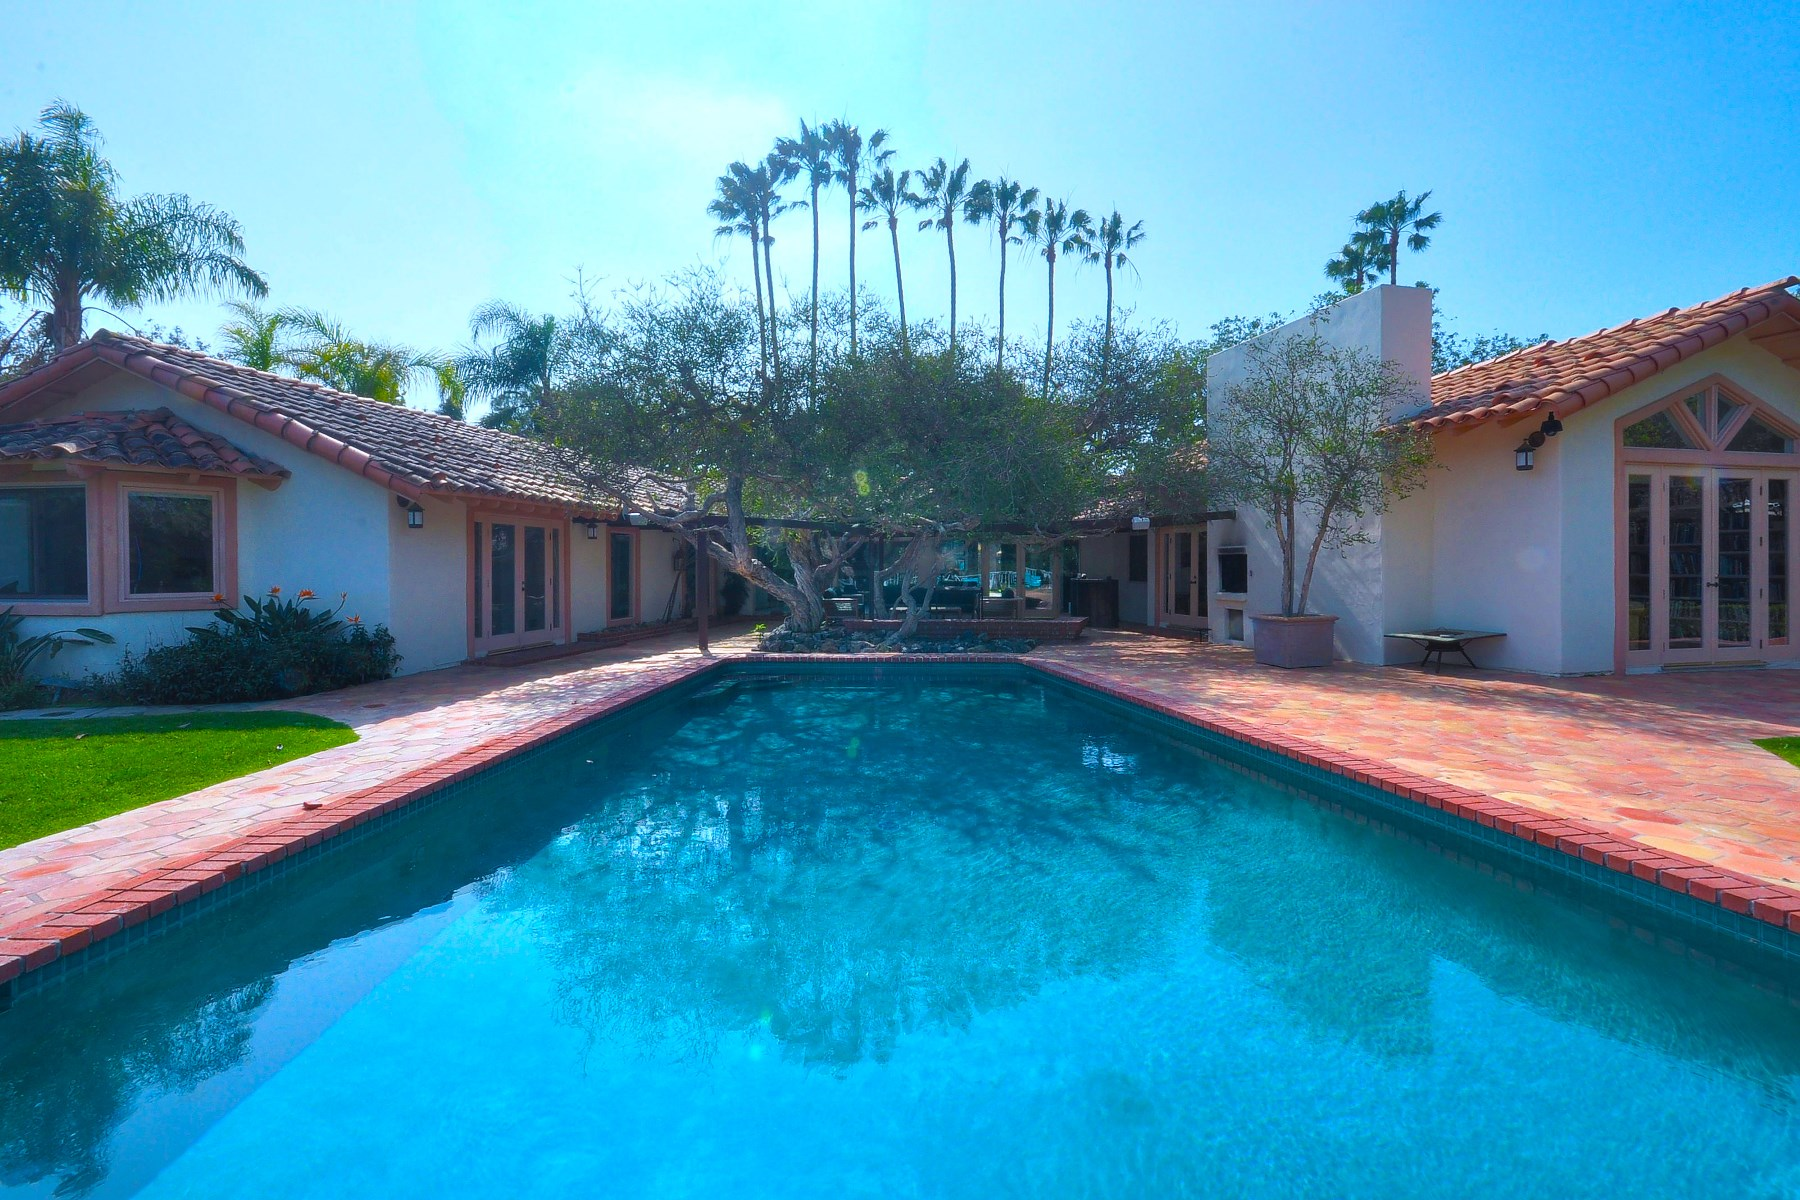 Single Family Home for Sale at Point Dume Gated Estate Malibu, California 90265 United States